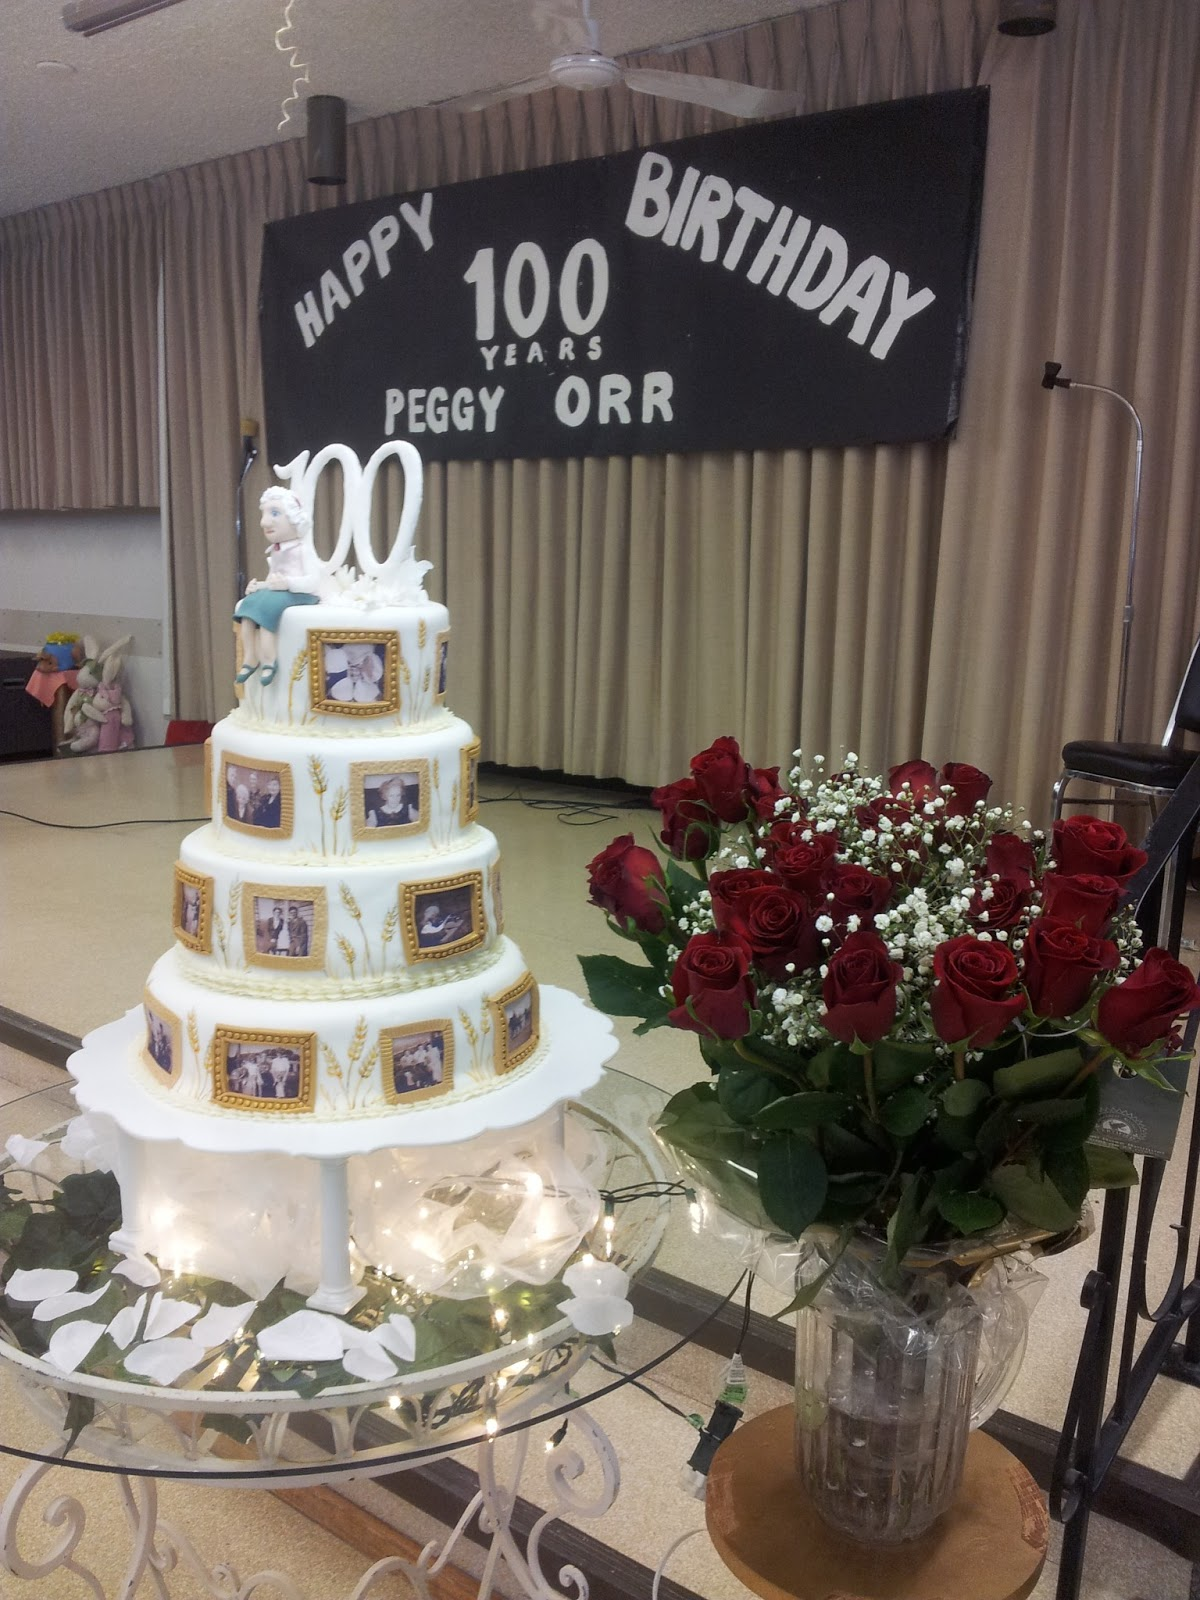 Kiddles N Bits 100th Birthday Cake